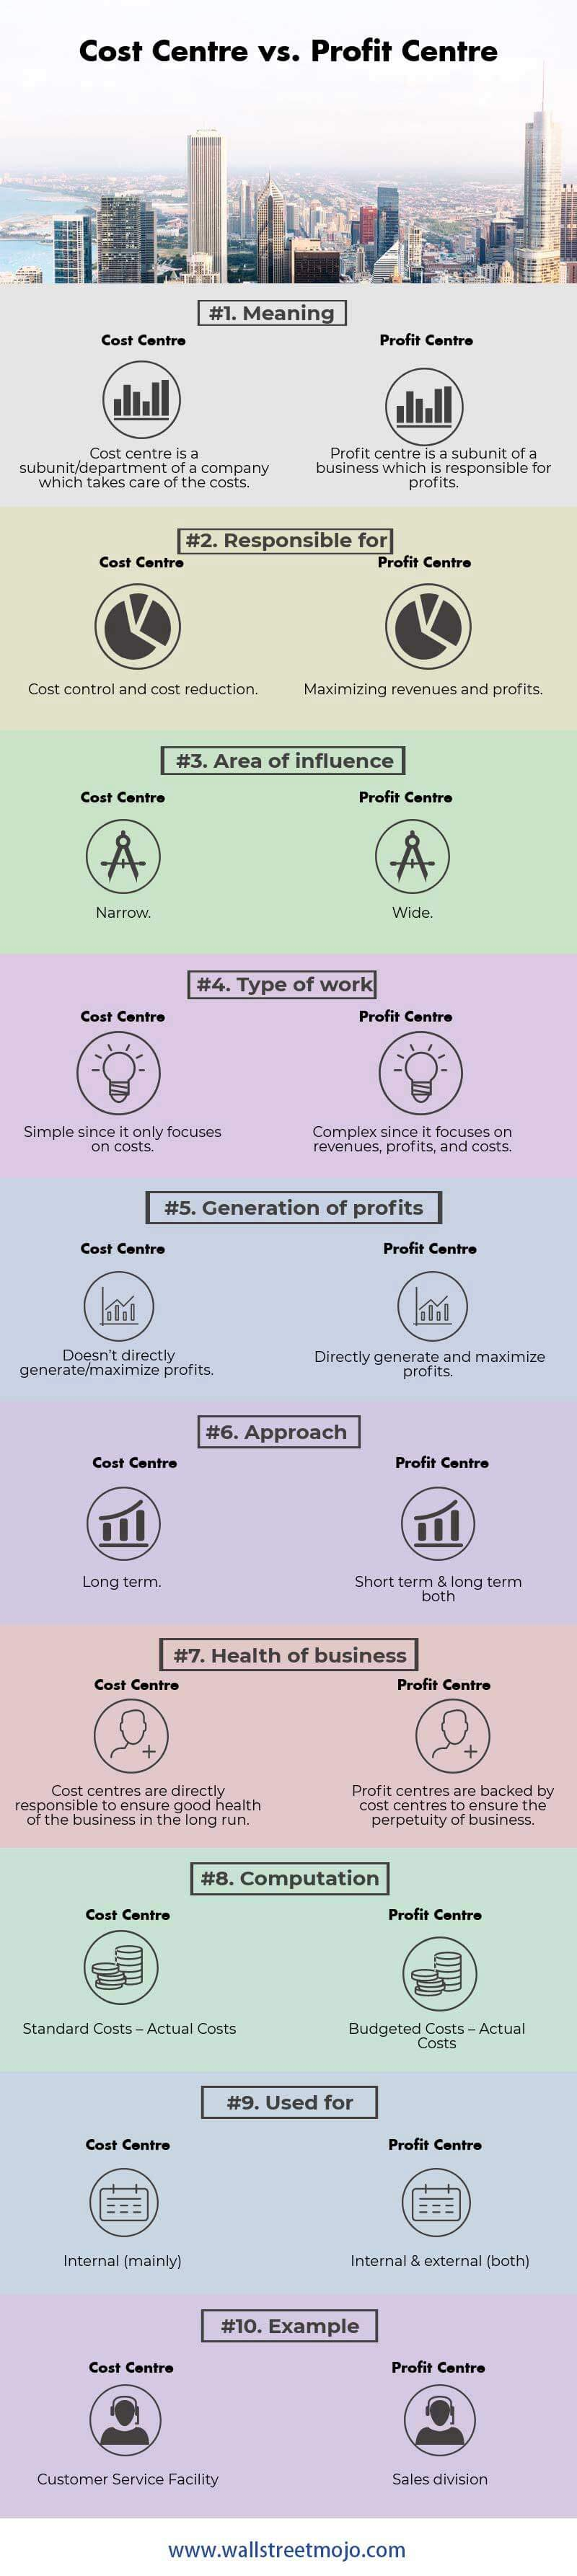 Cost-Centre-vs-Profit-Centre